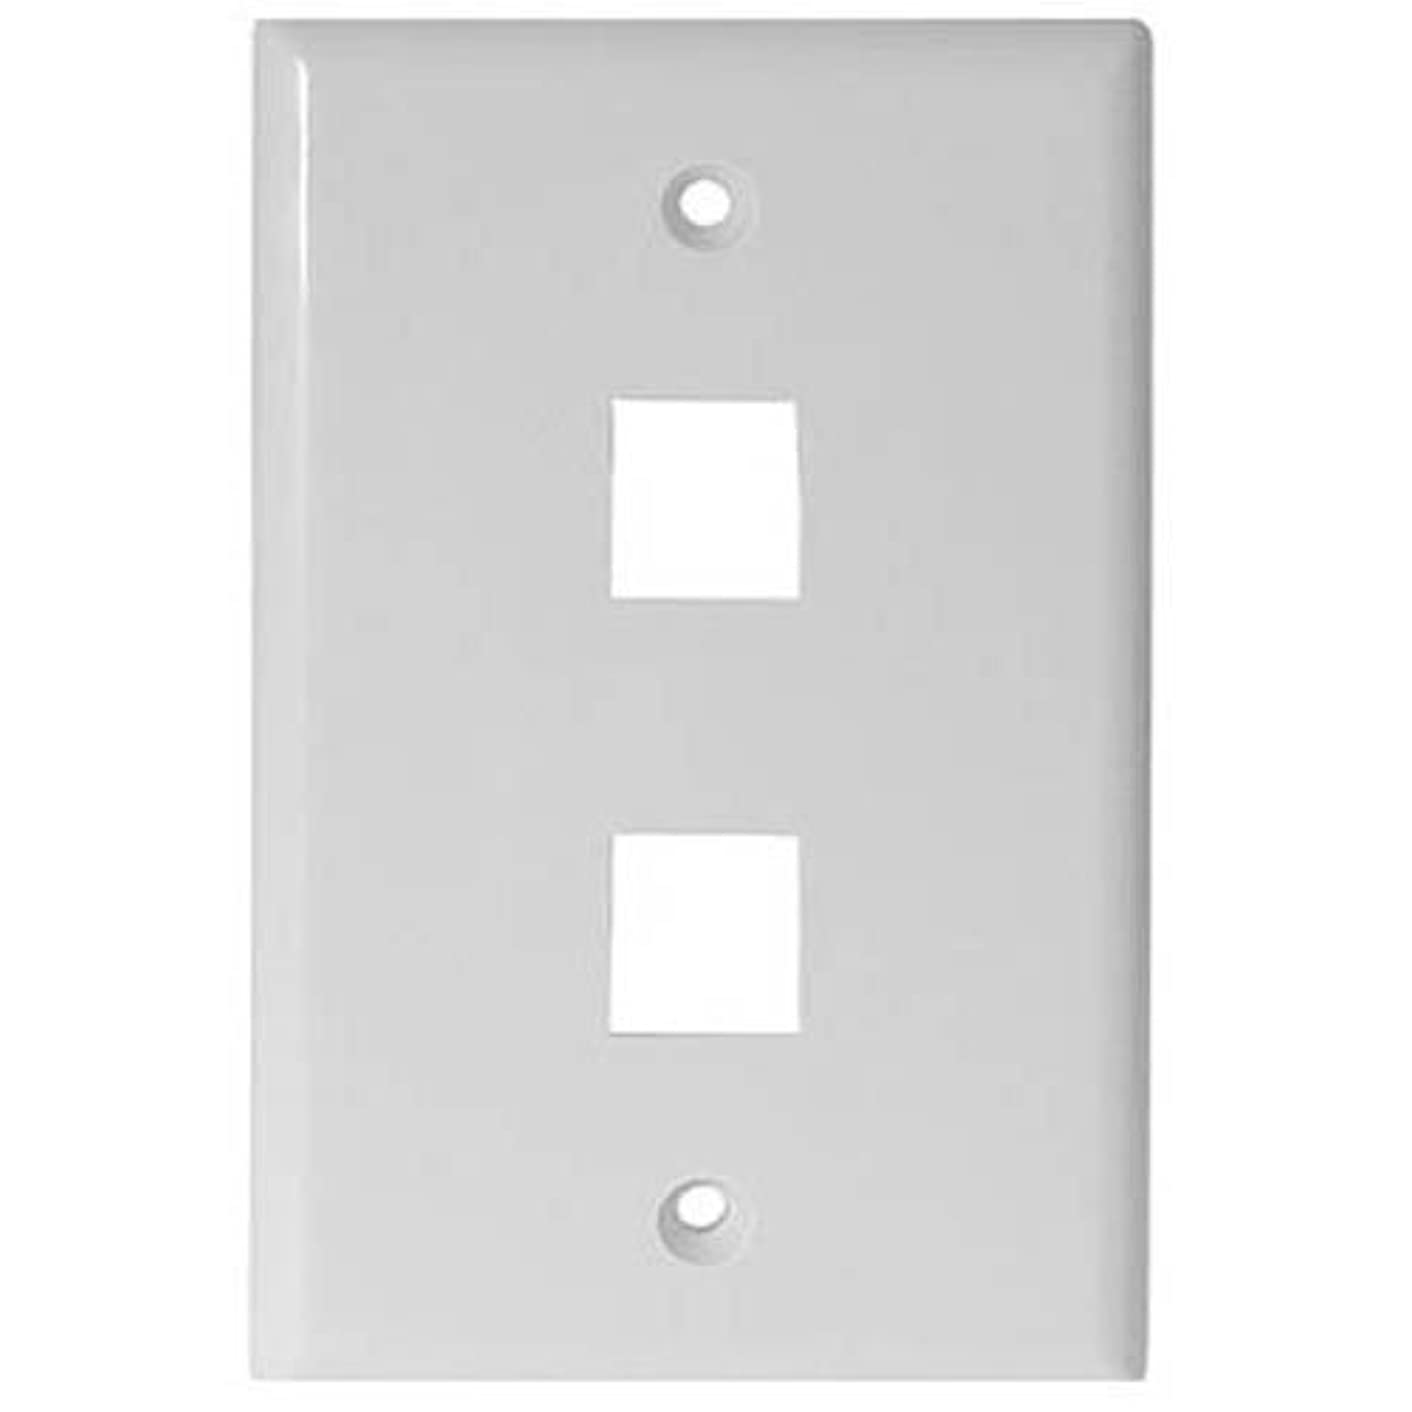 White 2 Port Hole Keystone Jack Flat Wall Plate with Smooth Surface (20/pack)